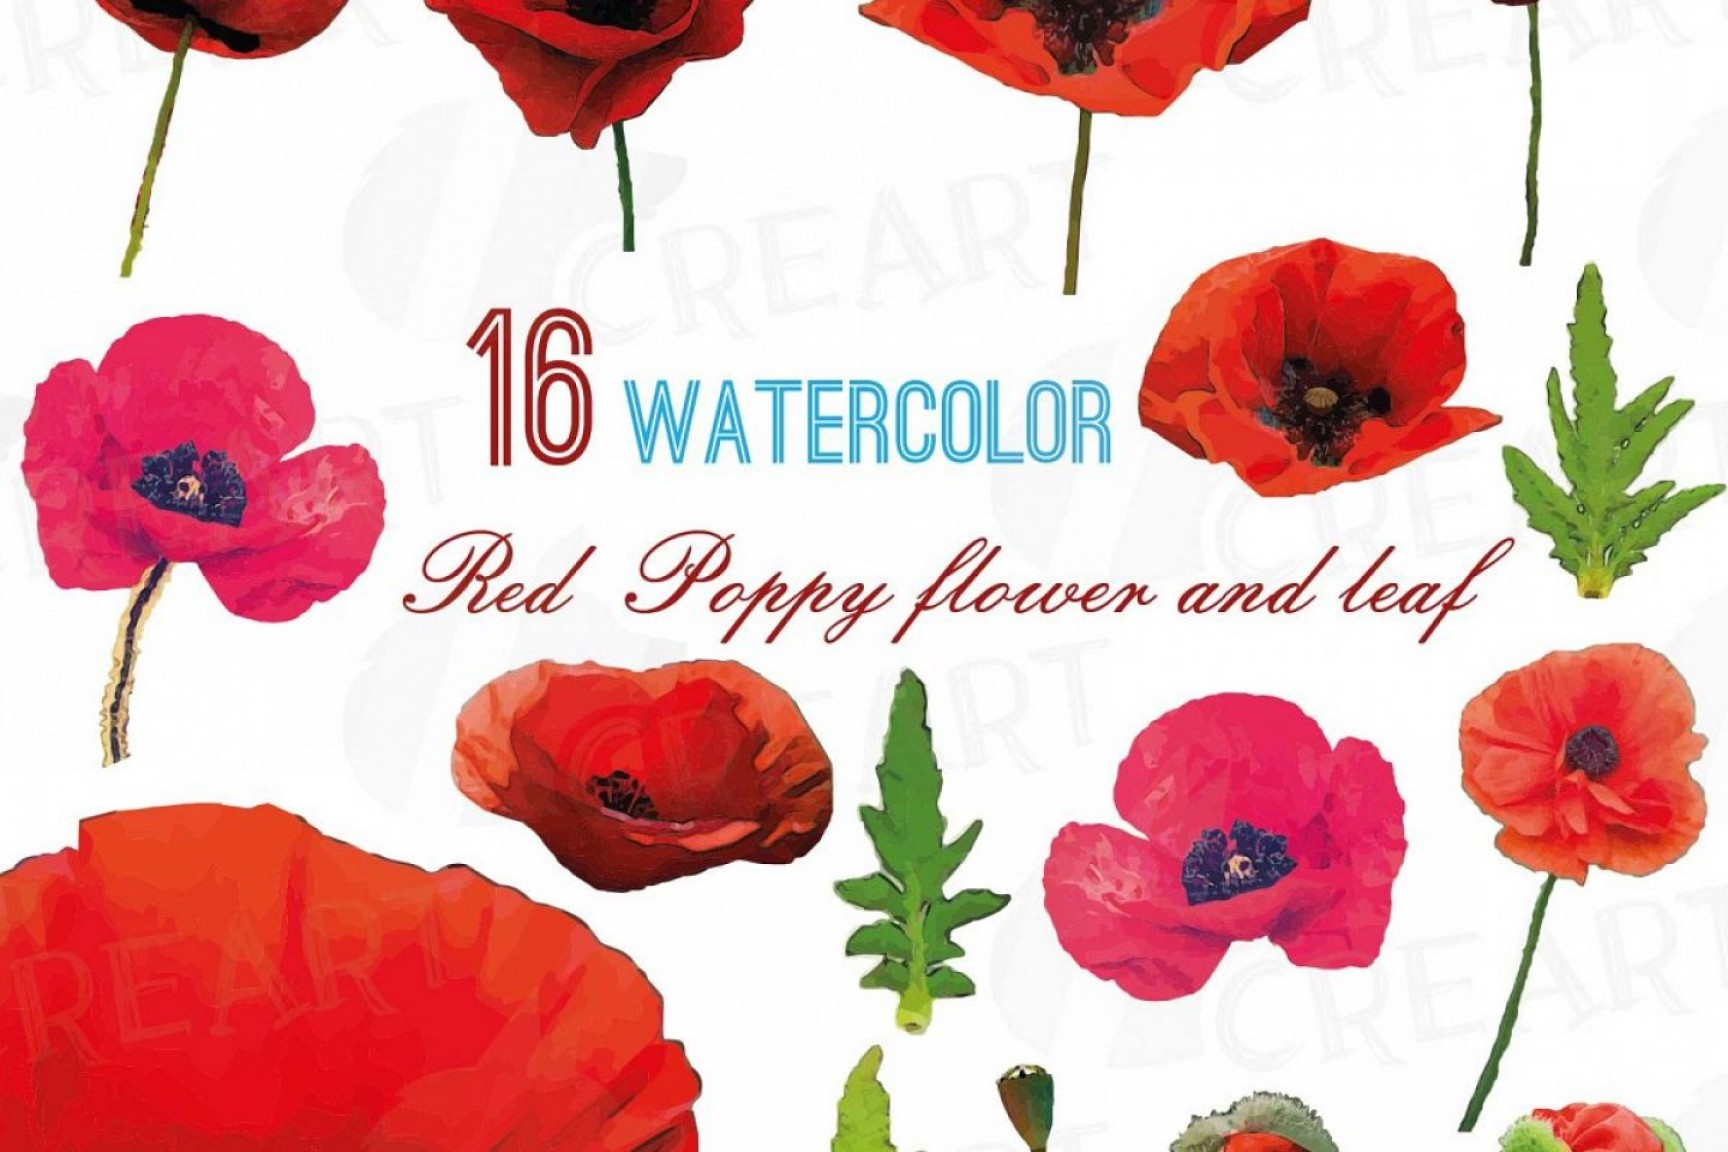 Corel Vector Clip Art: Watercolor Red Poppy Flower And Leaf Clip Art Pack Poppies Clip Art Png Jpg Svg Vector Illustrator And Corel Files Included